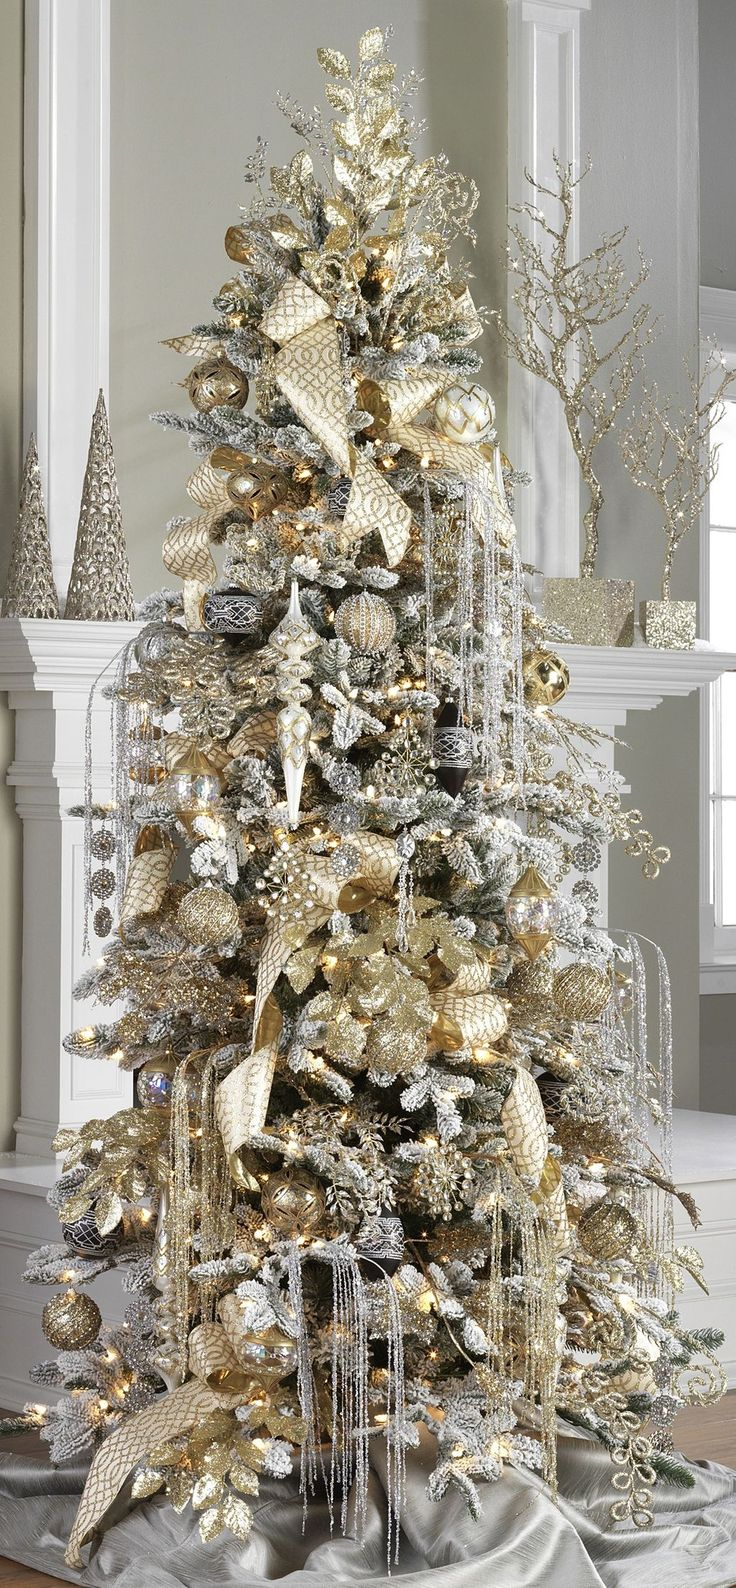 88 Up to Date and Stylish Christmas Tree Decoration Ideas with Ribbon